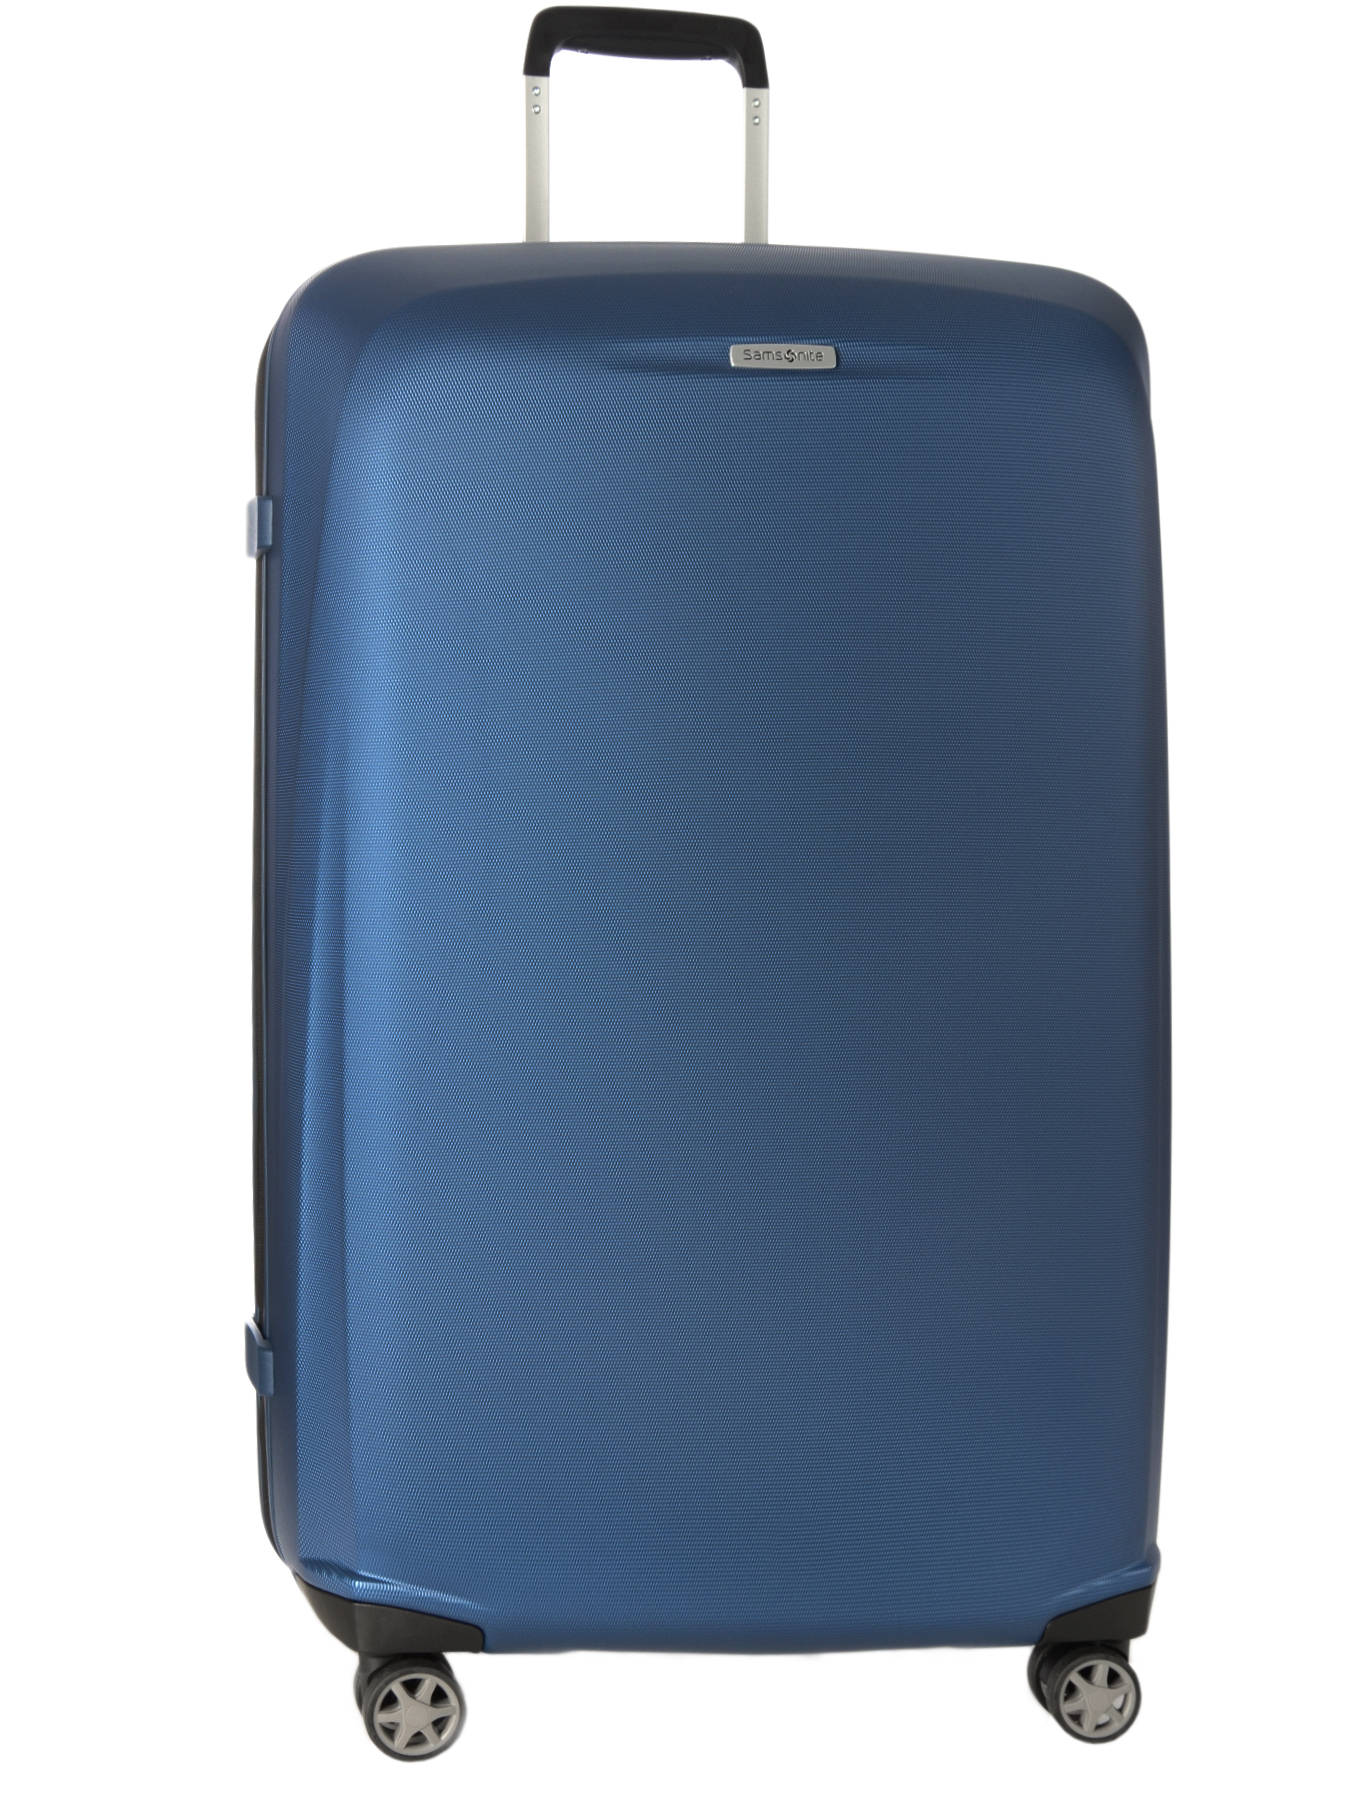 valise rigide samsonite starfire blue en vente au meilleur. Black Bedroom Furniture Sets. Home Design Ideas